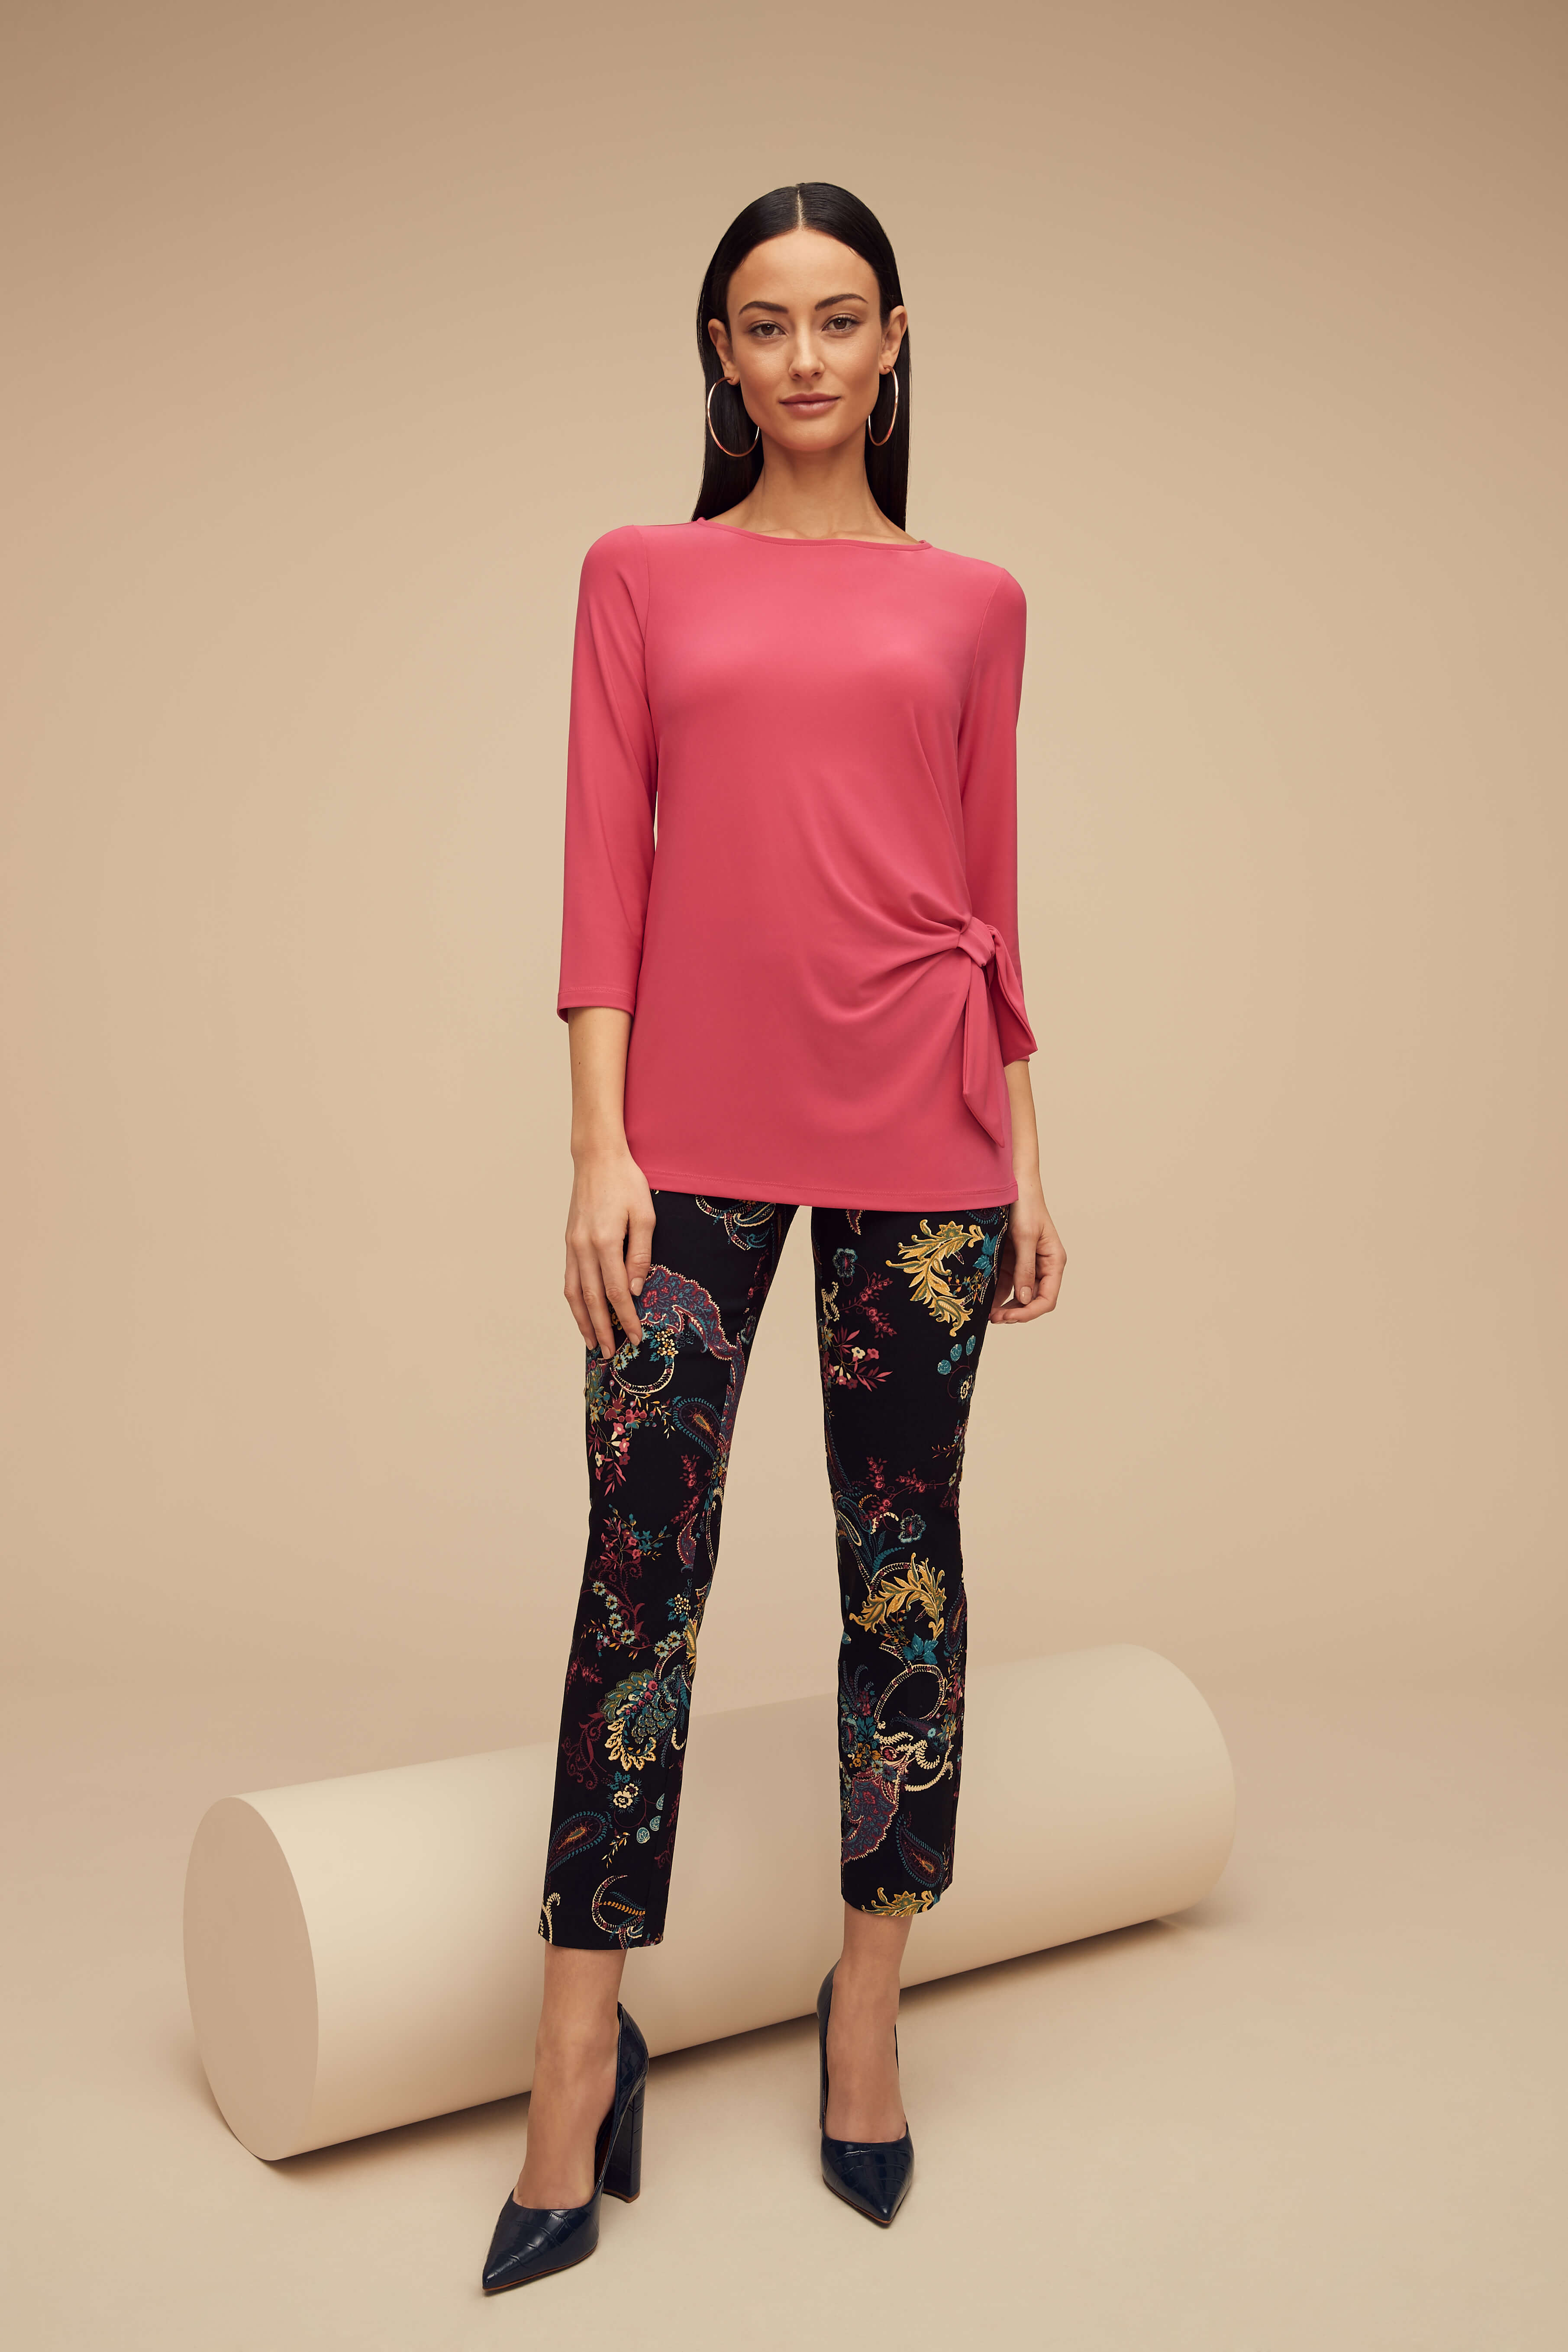 Lisette L Essentials, Tops Style 171308 Emma Jersey Knit